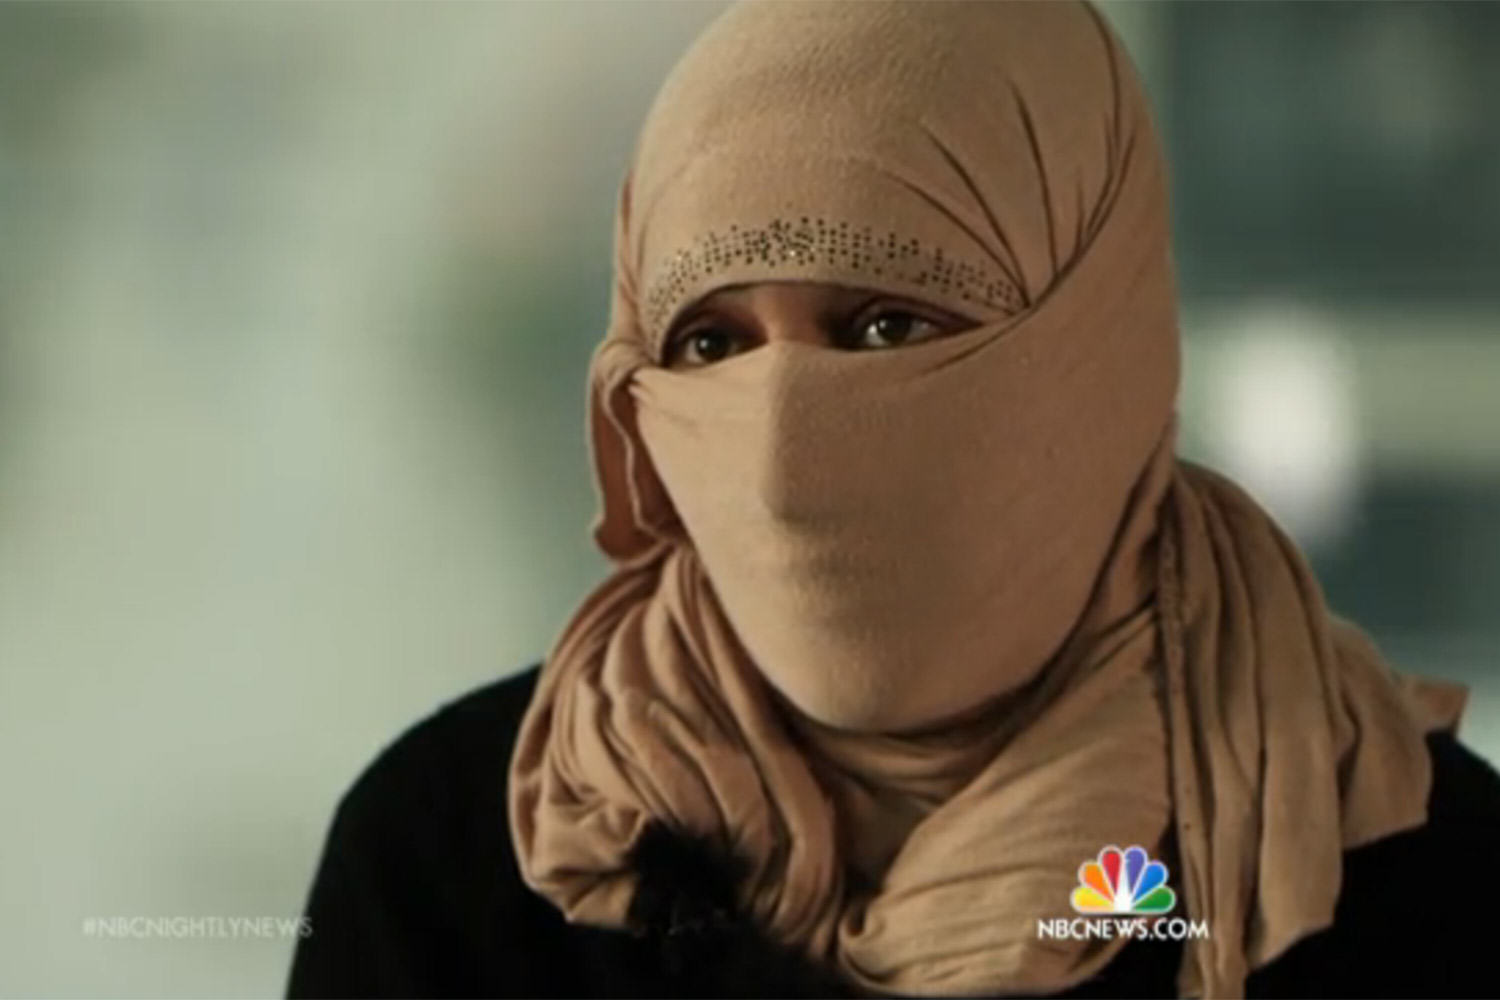 NBC News ISIS Fighters Trading Yazidi Women For As Little As A Pack Of Cigarettes